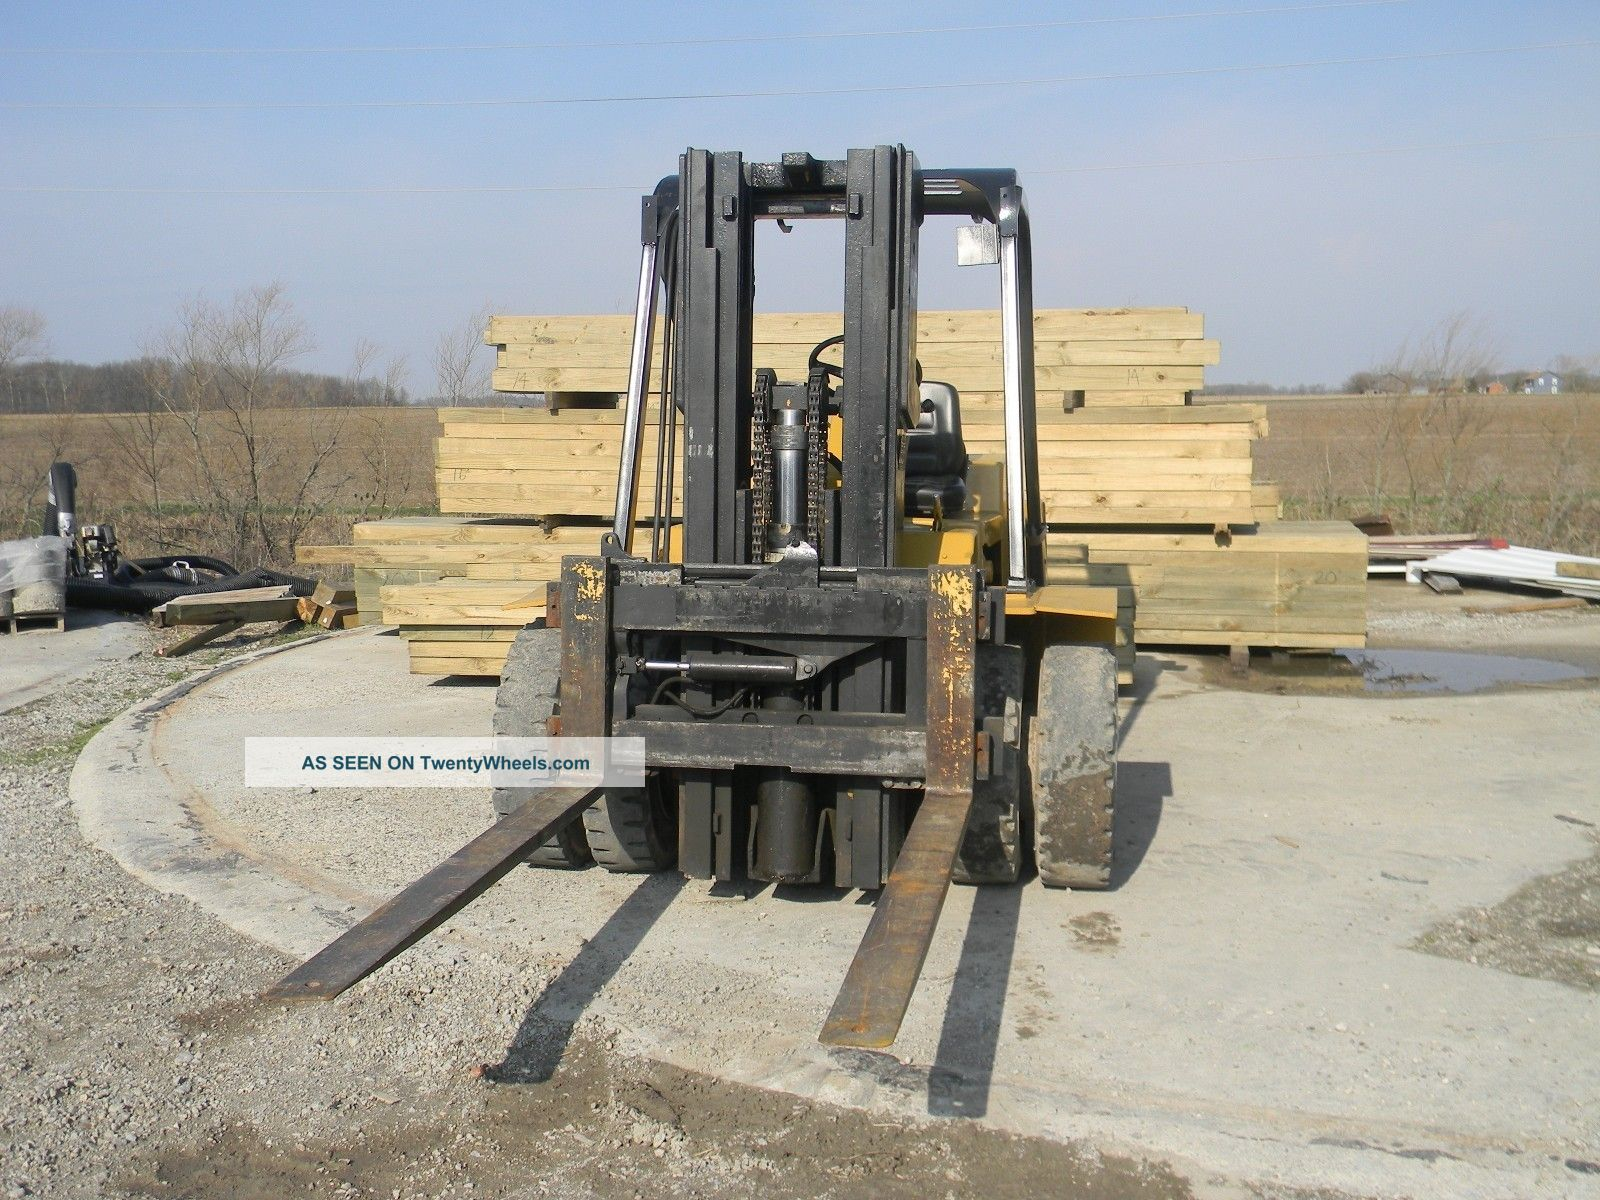 Forklift Forklifts & Other Lifts photo